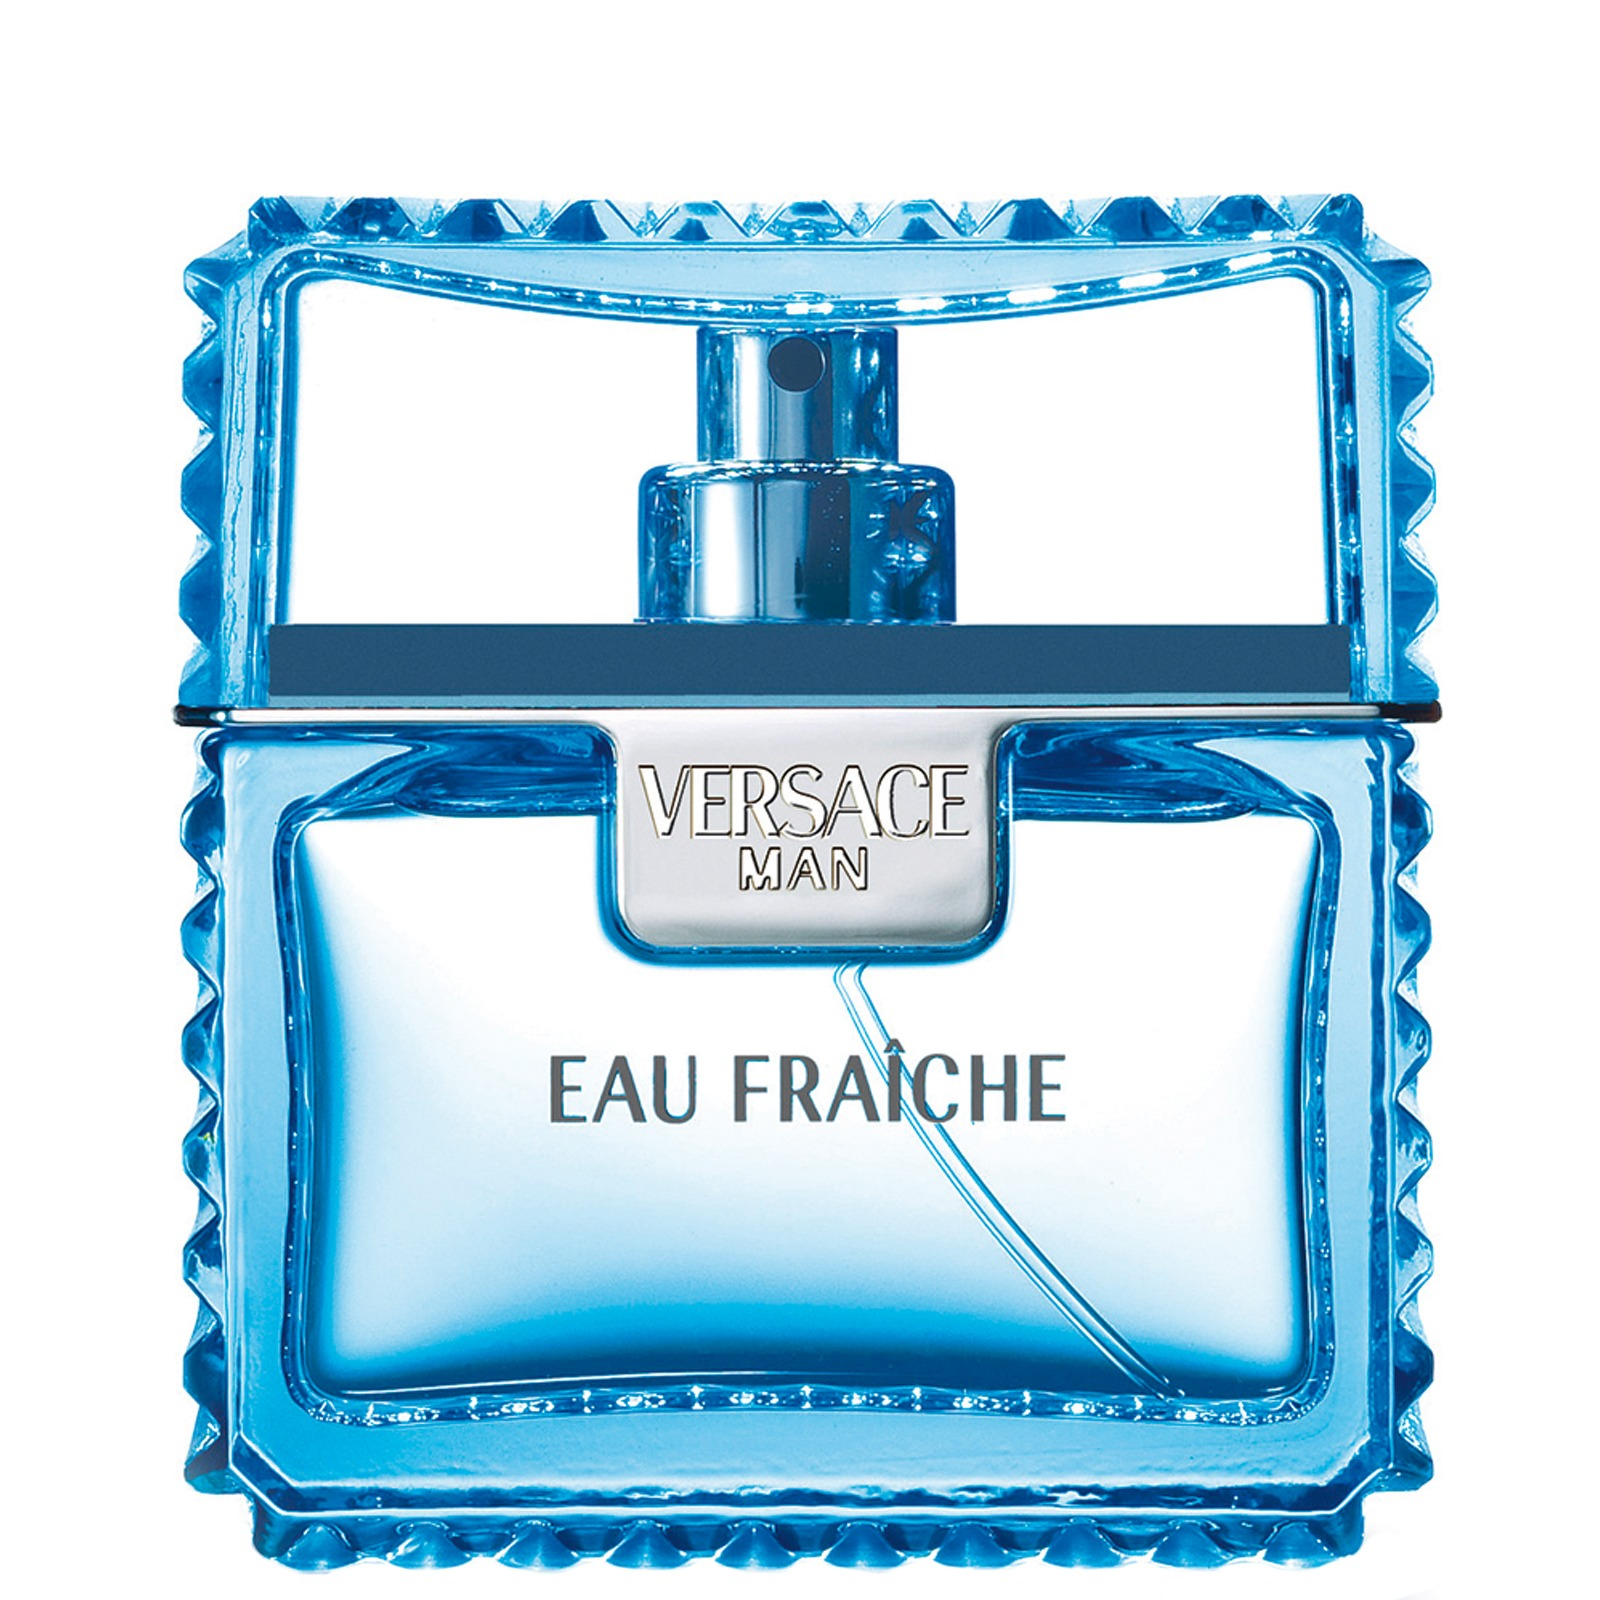 Versace Versace Man Eau Fraiche Eau de Toilette Spray 50ml